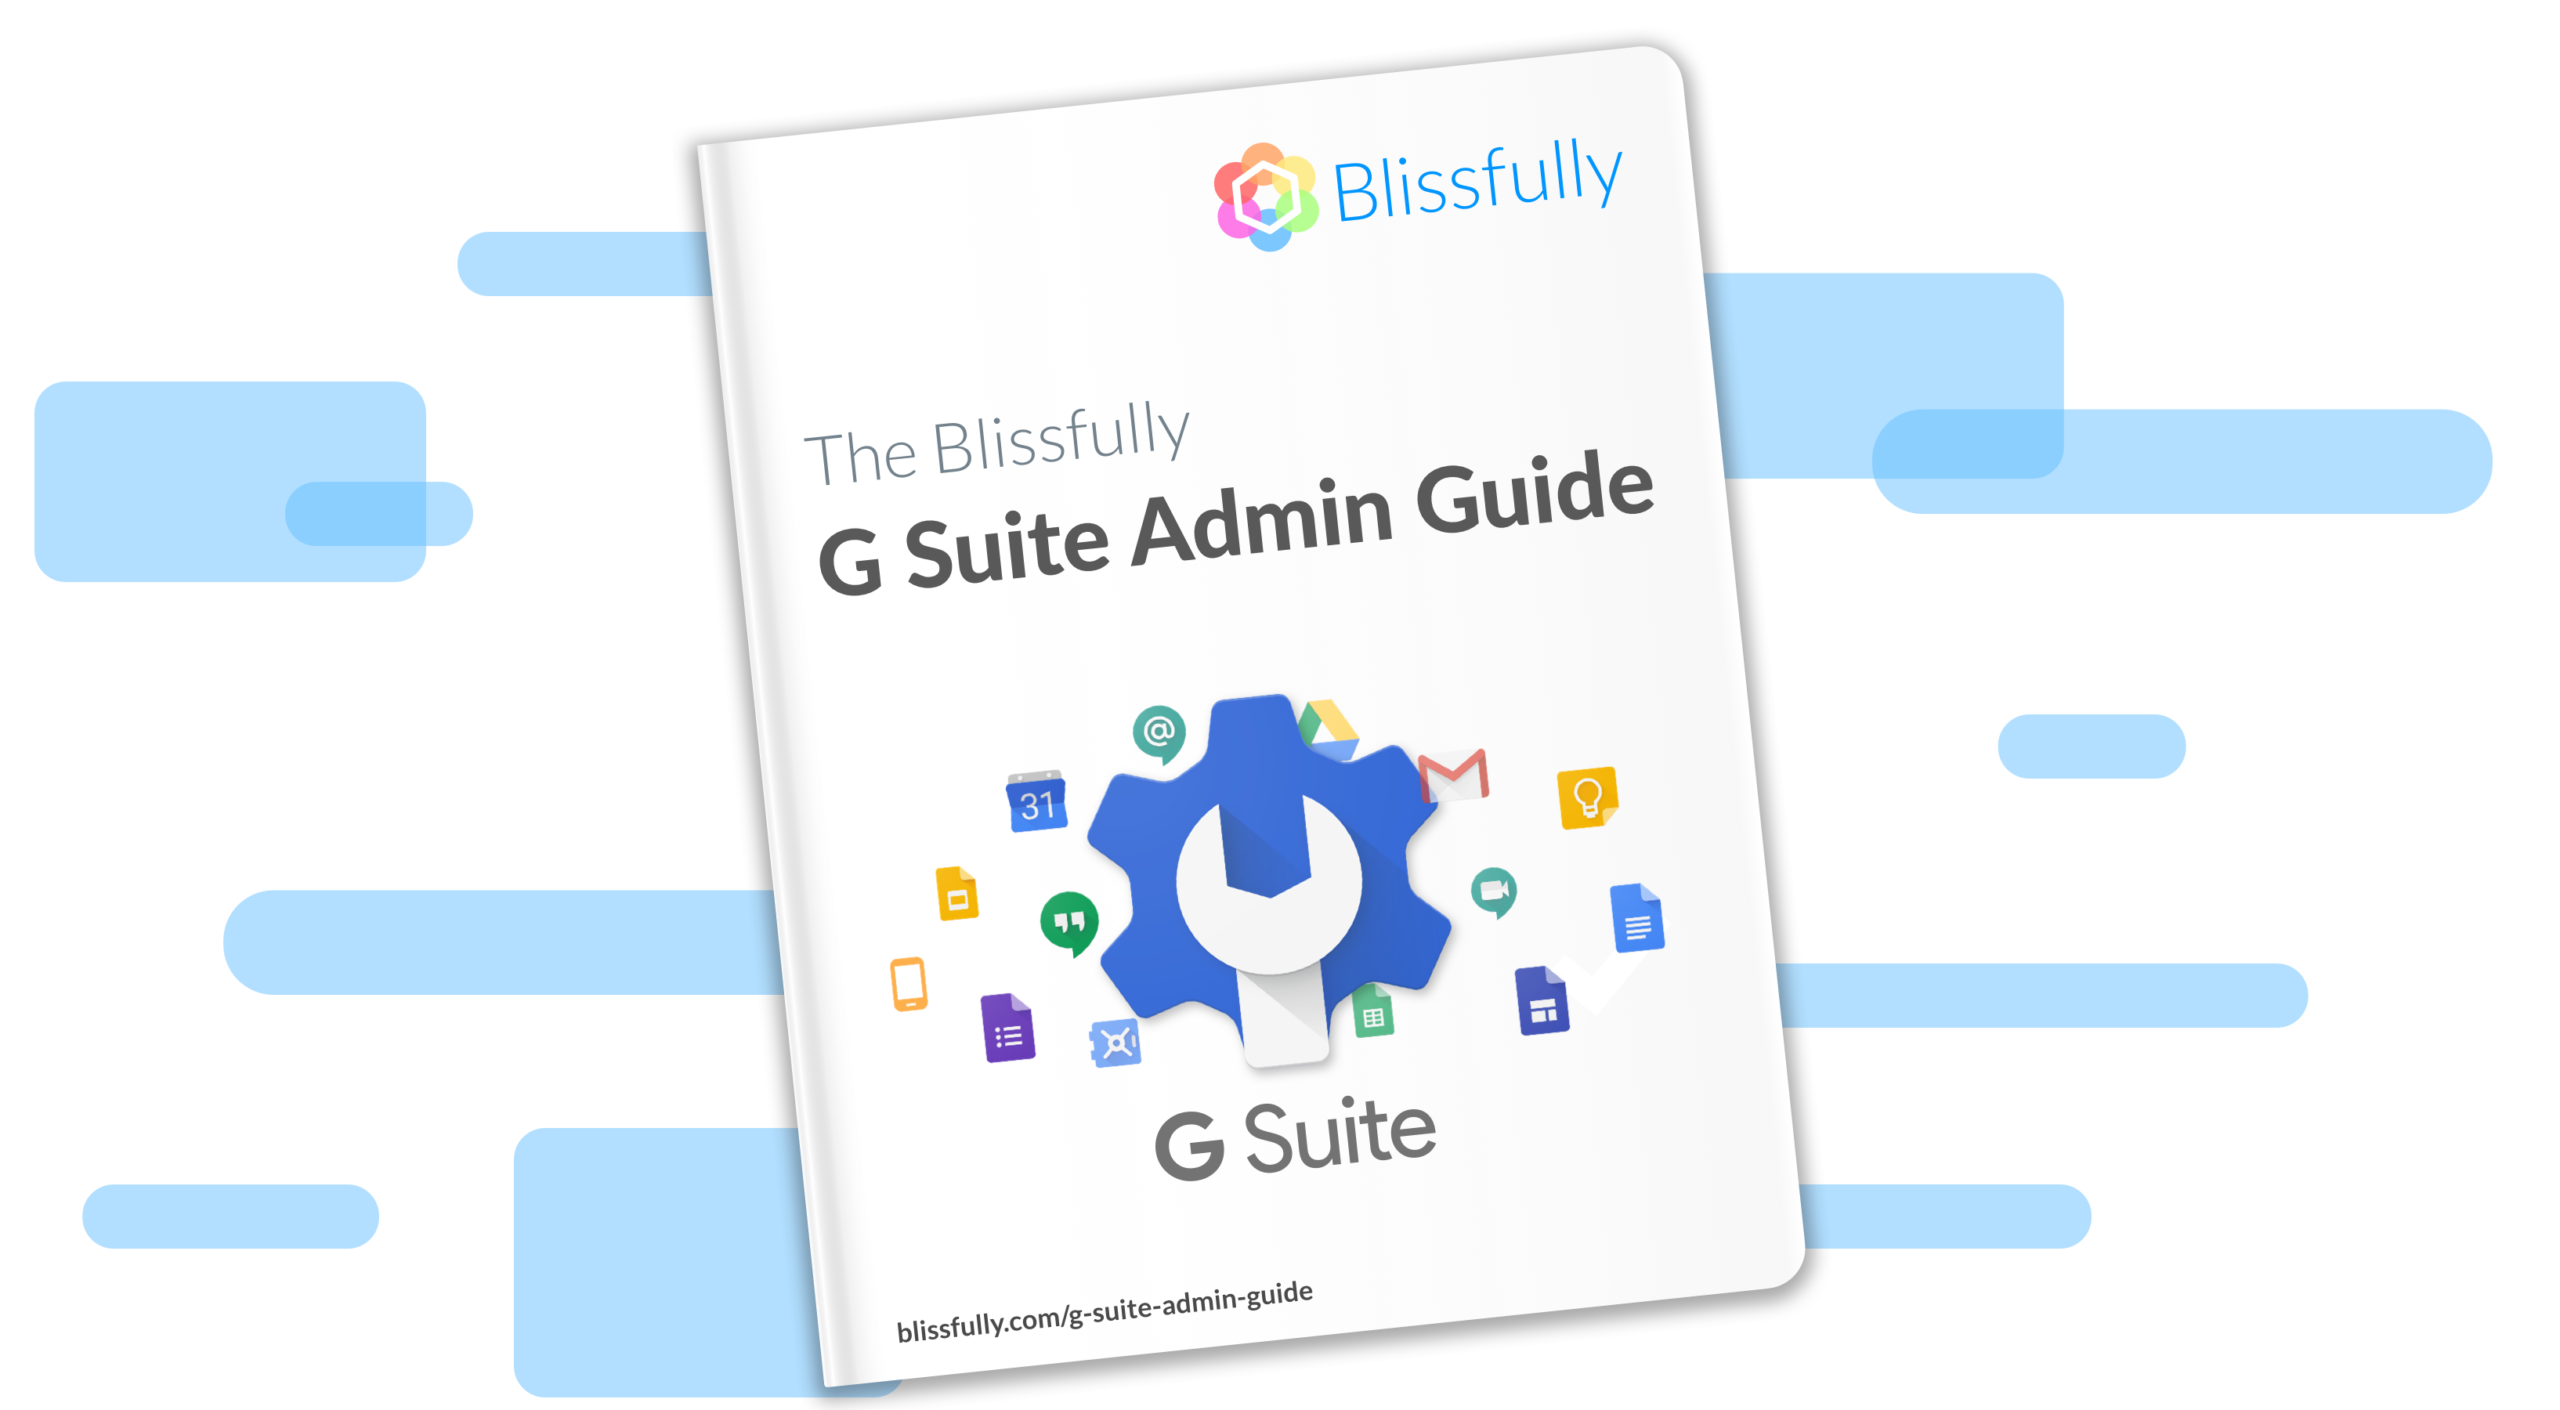 The Blissfully G Suite Admin Guide